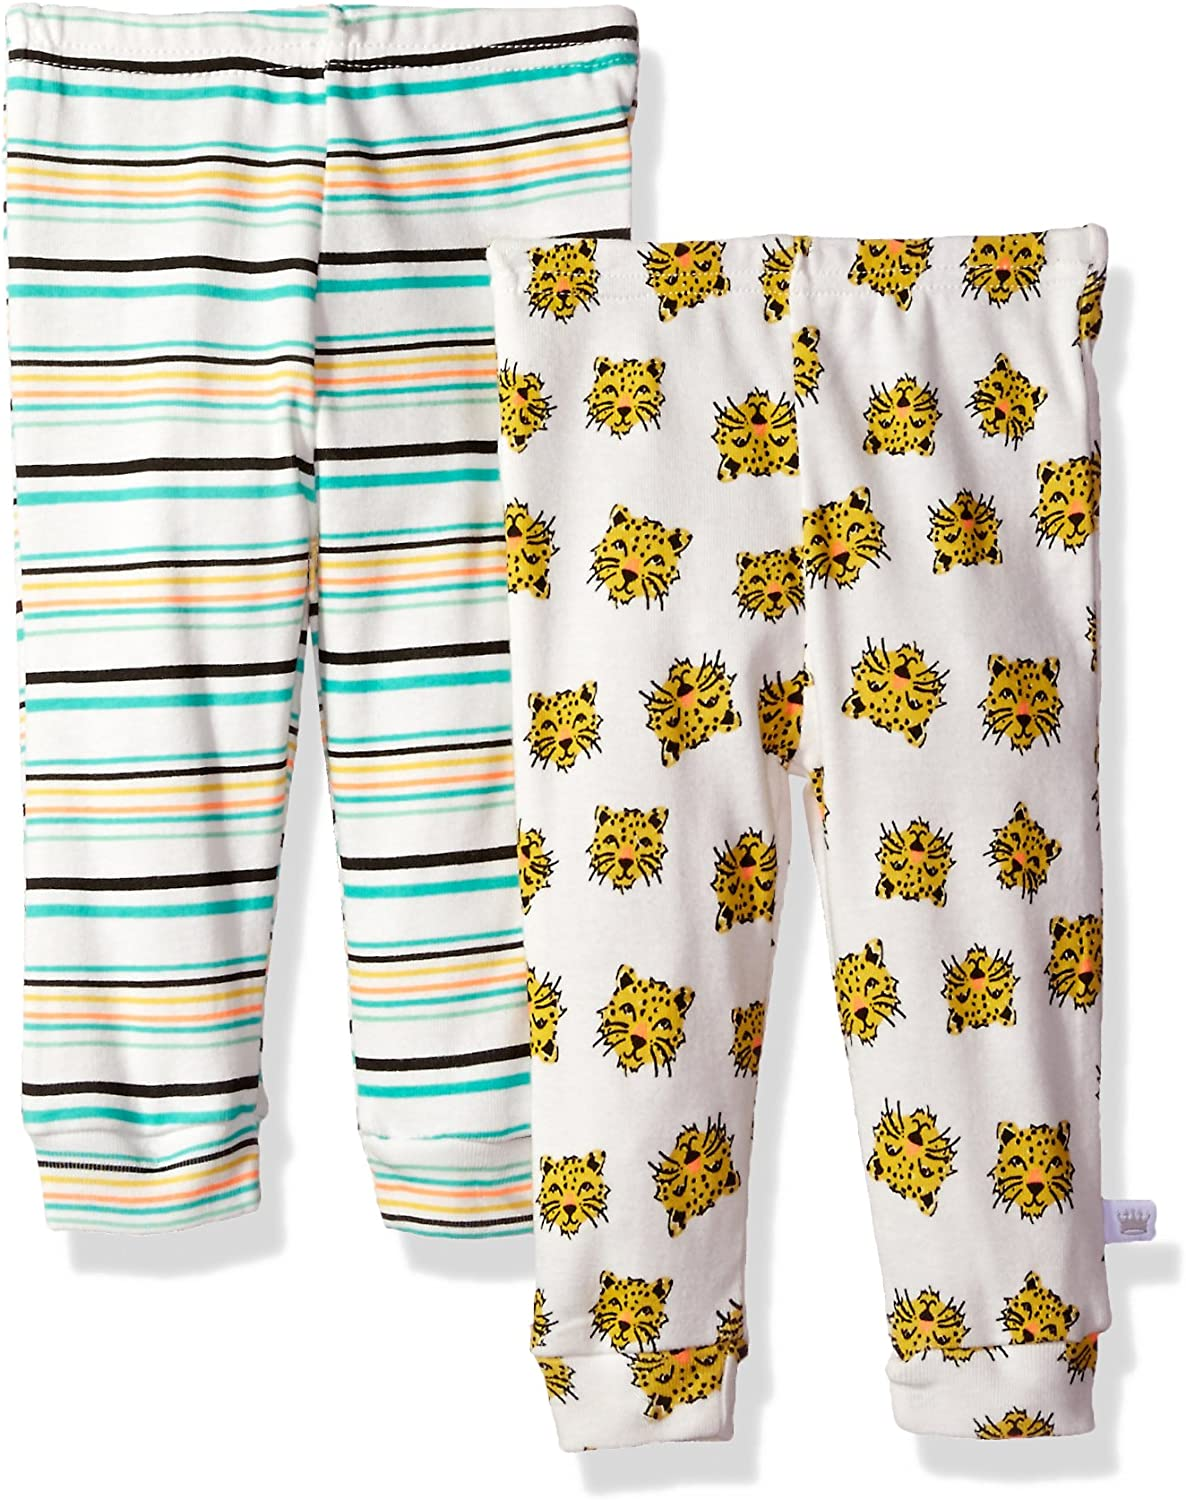 Rosie Pope Baby Newborn 2 Pack Pants More Options Available